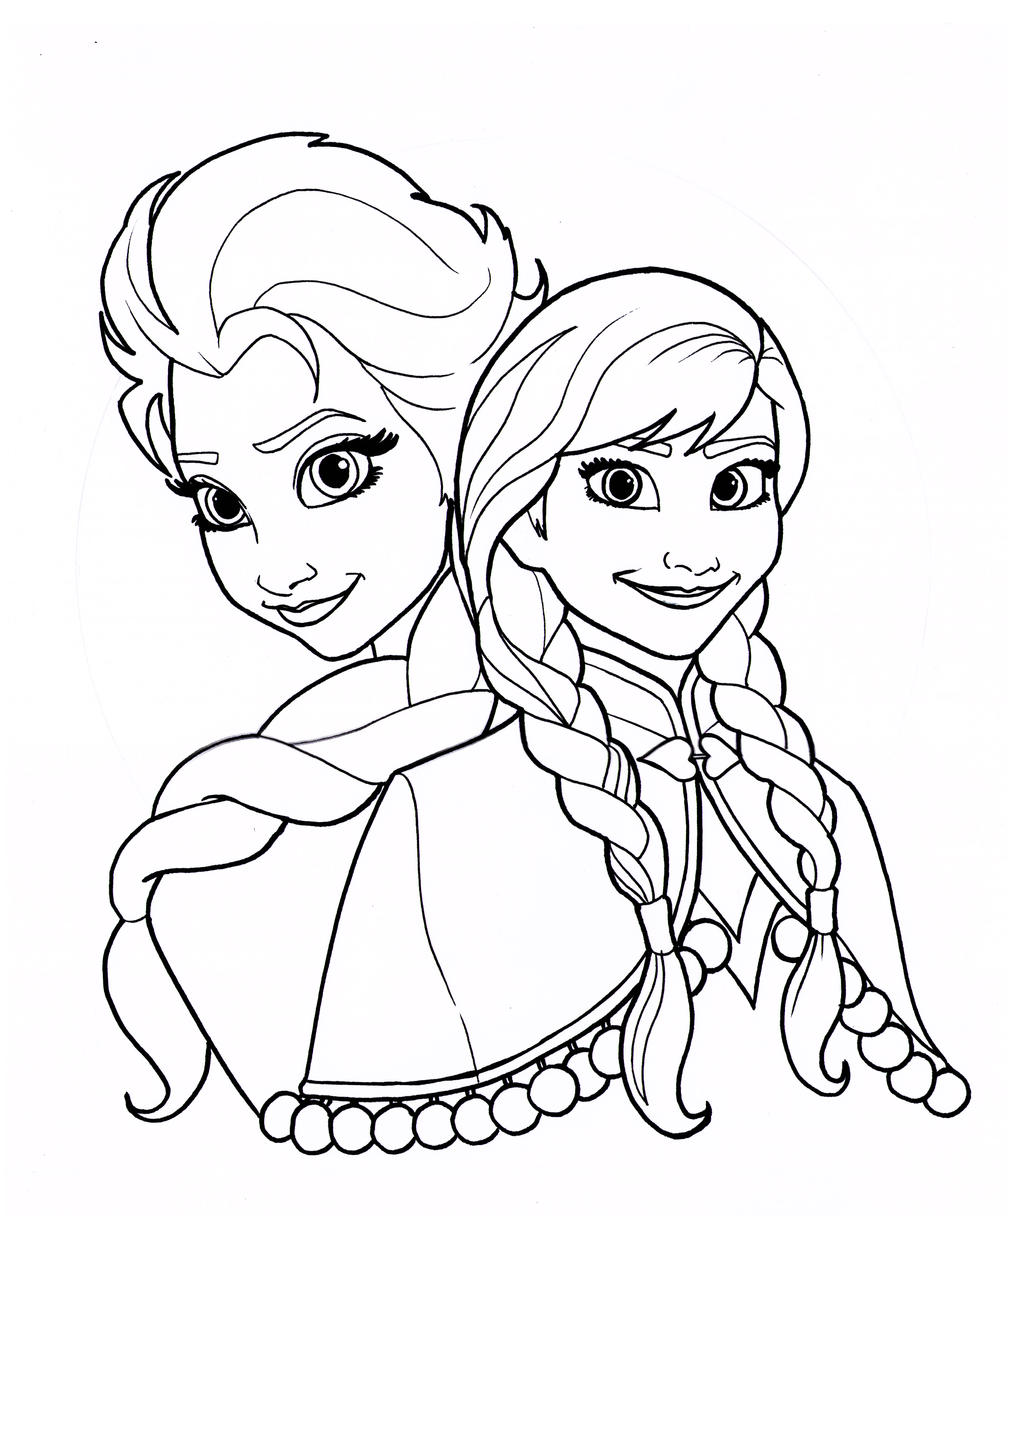 Elsa And Anna Picturesblack And White | Search Results | Calendar 2015